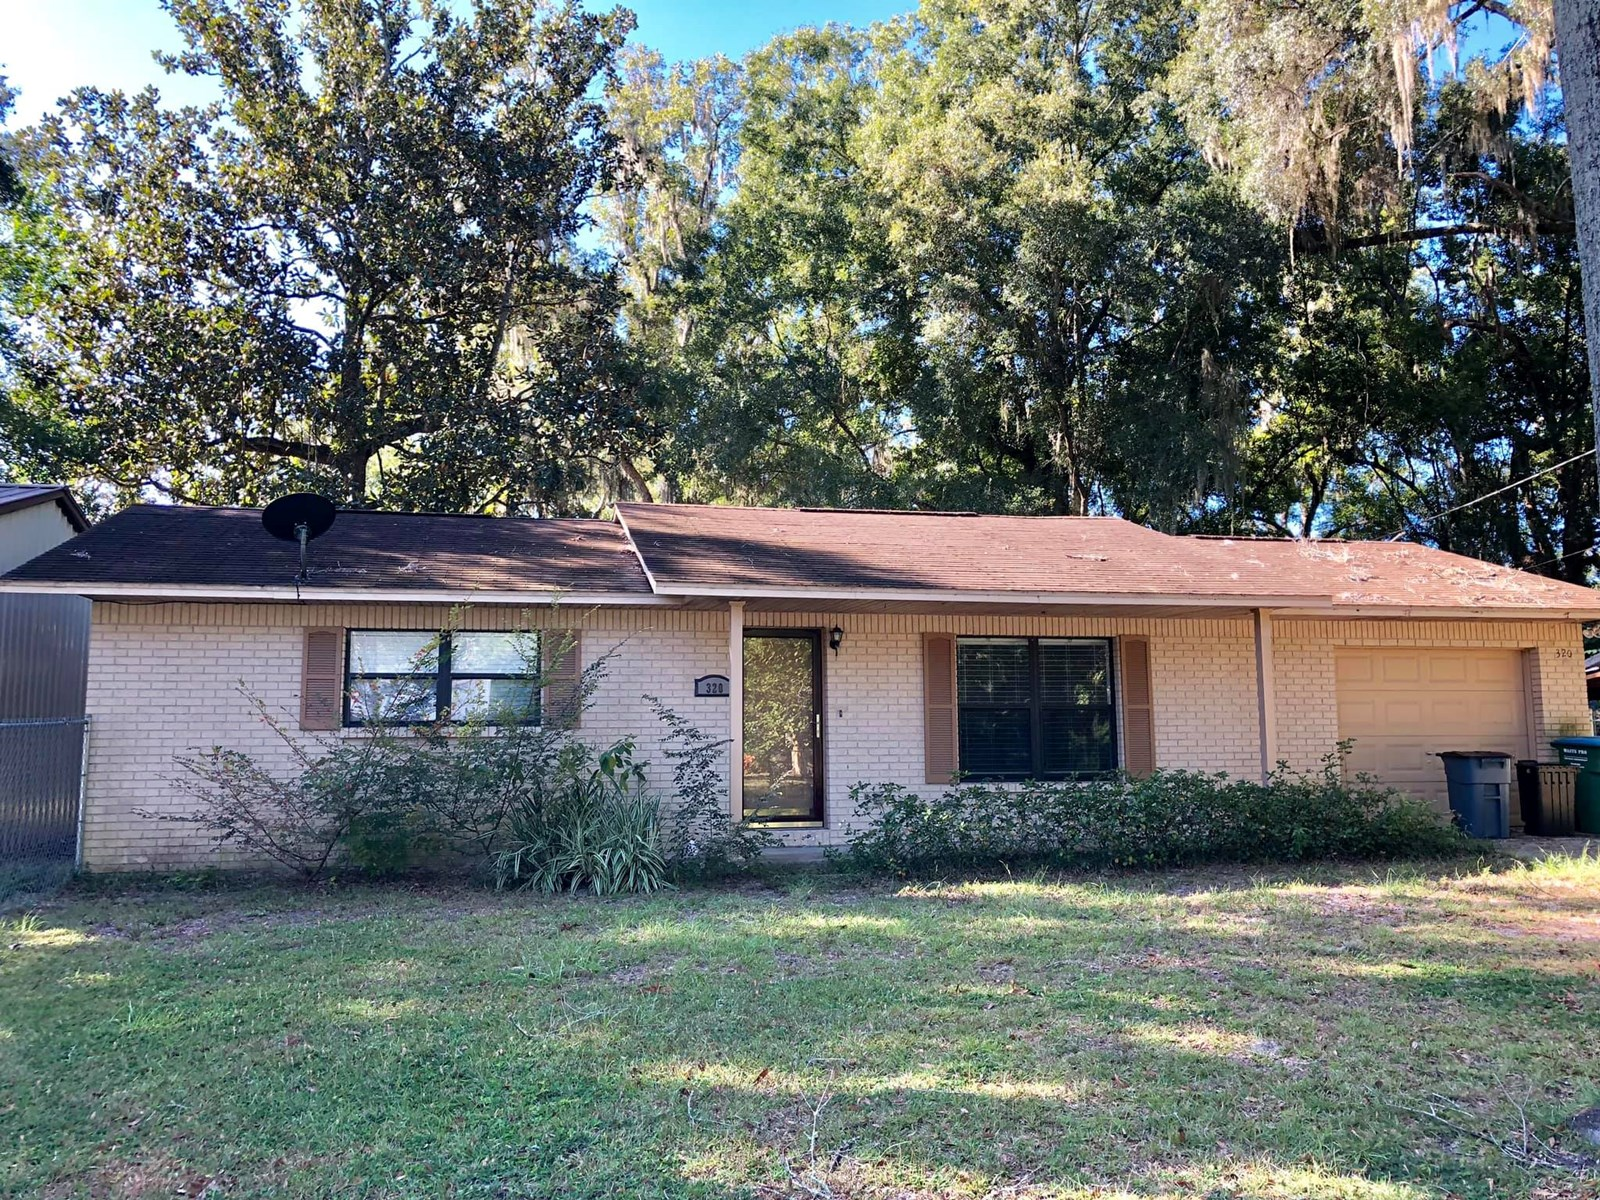 3/1 CONCRETE BLOCK home in the city of Trenton, FL